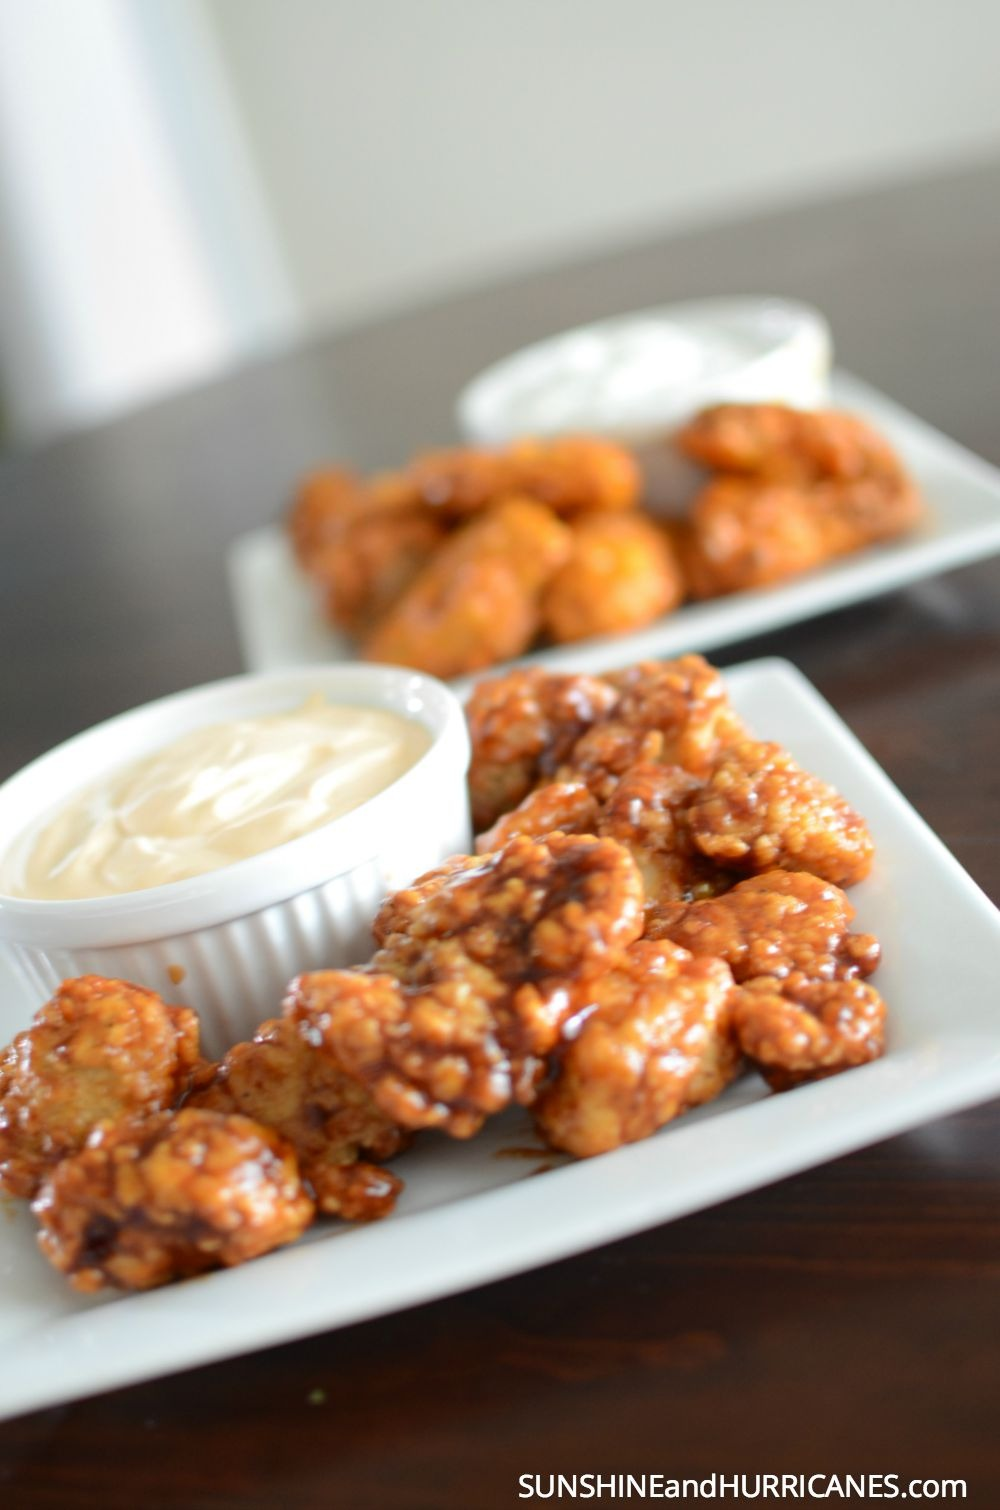 Looking for a quick and delicious after school snack, weeknight dinner option or even game day food? We've got 4 dip recipes that would go great with wings, veggies, crackers and chips. You know, because who doesn't love to dip their food?! 4 easy dip recipes. SunshineandHurricanes.com